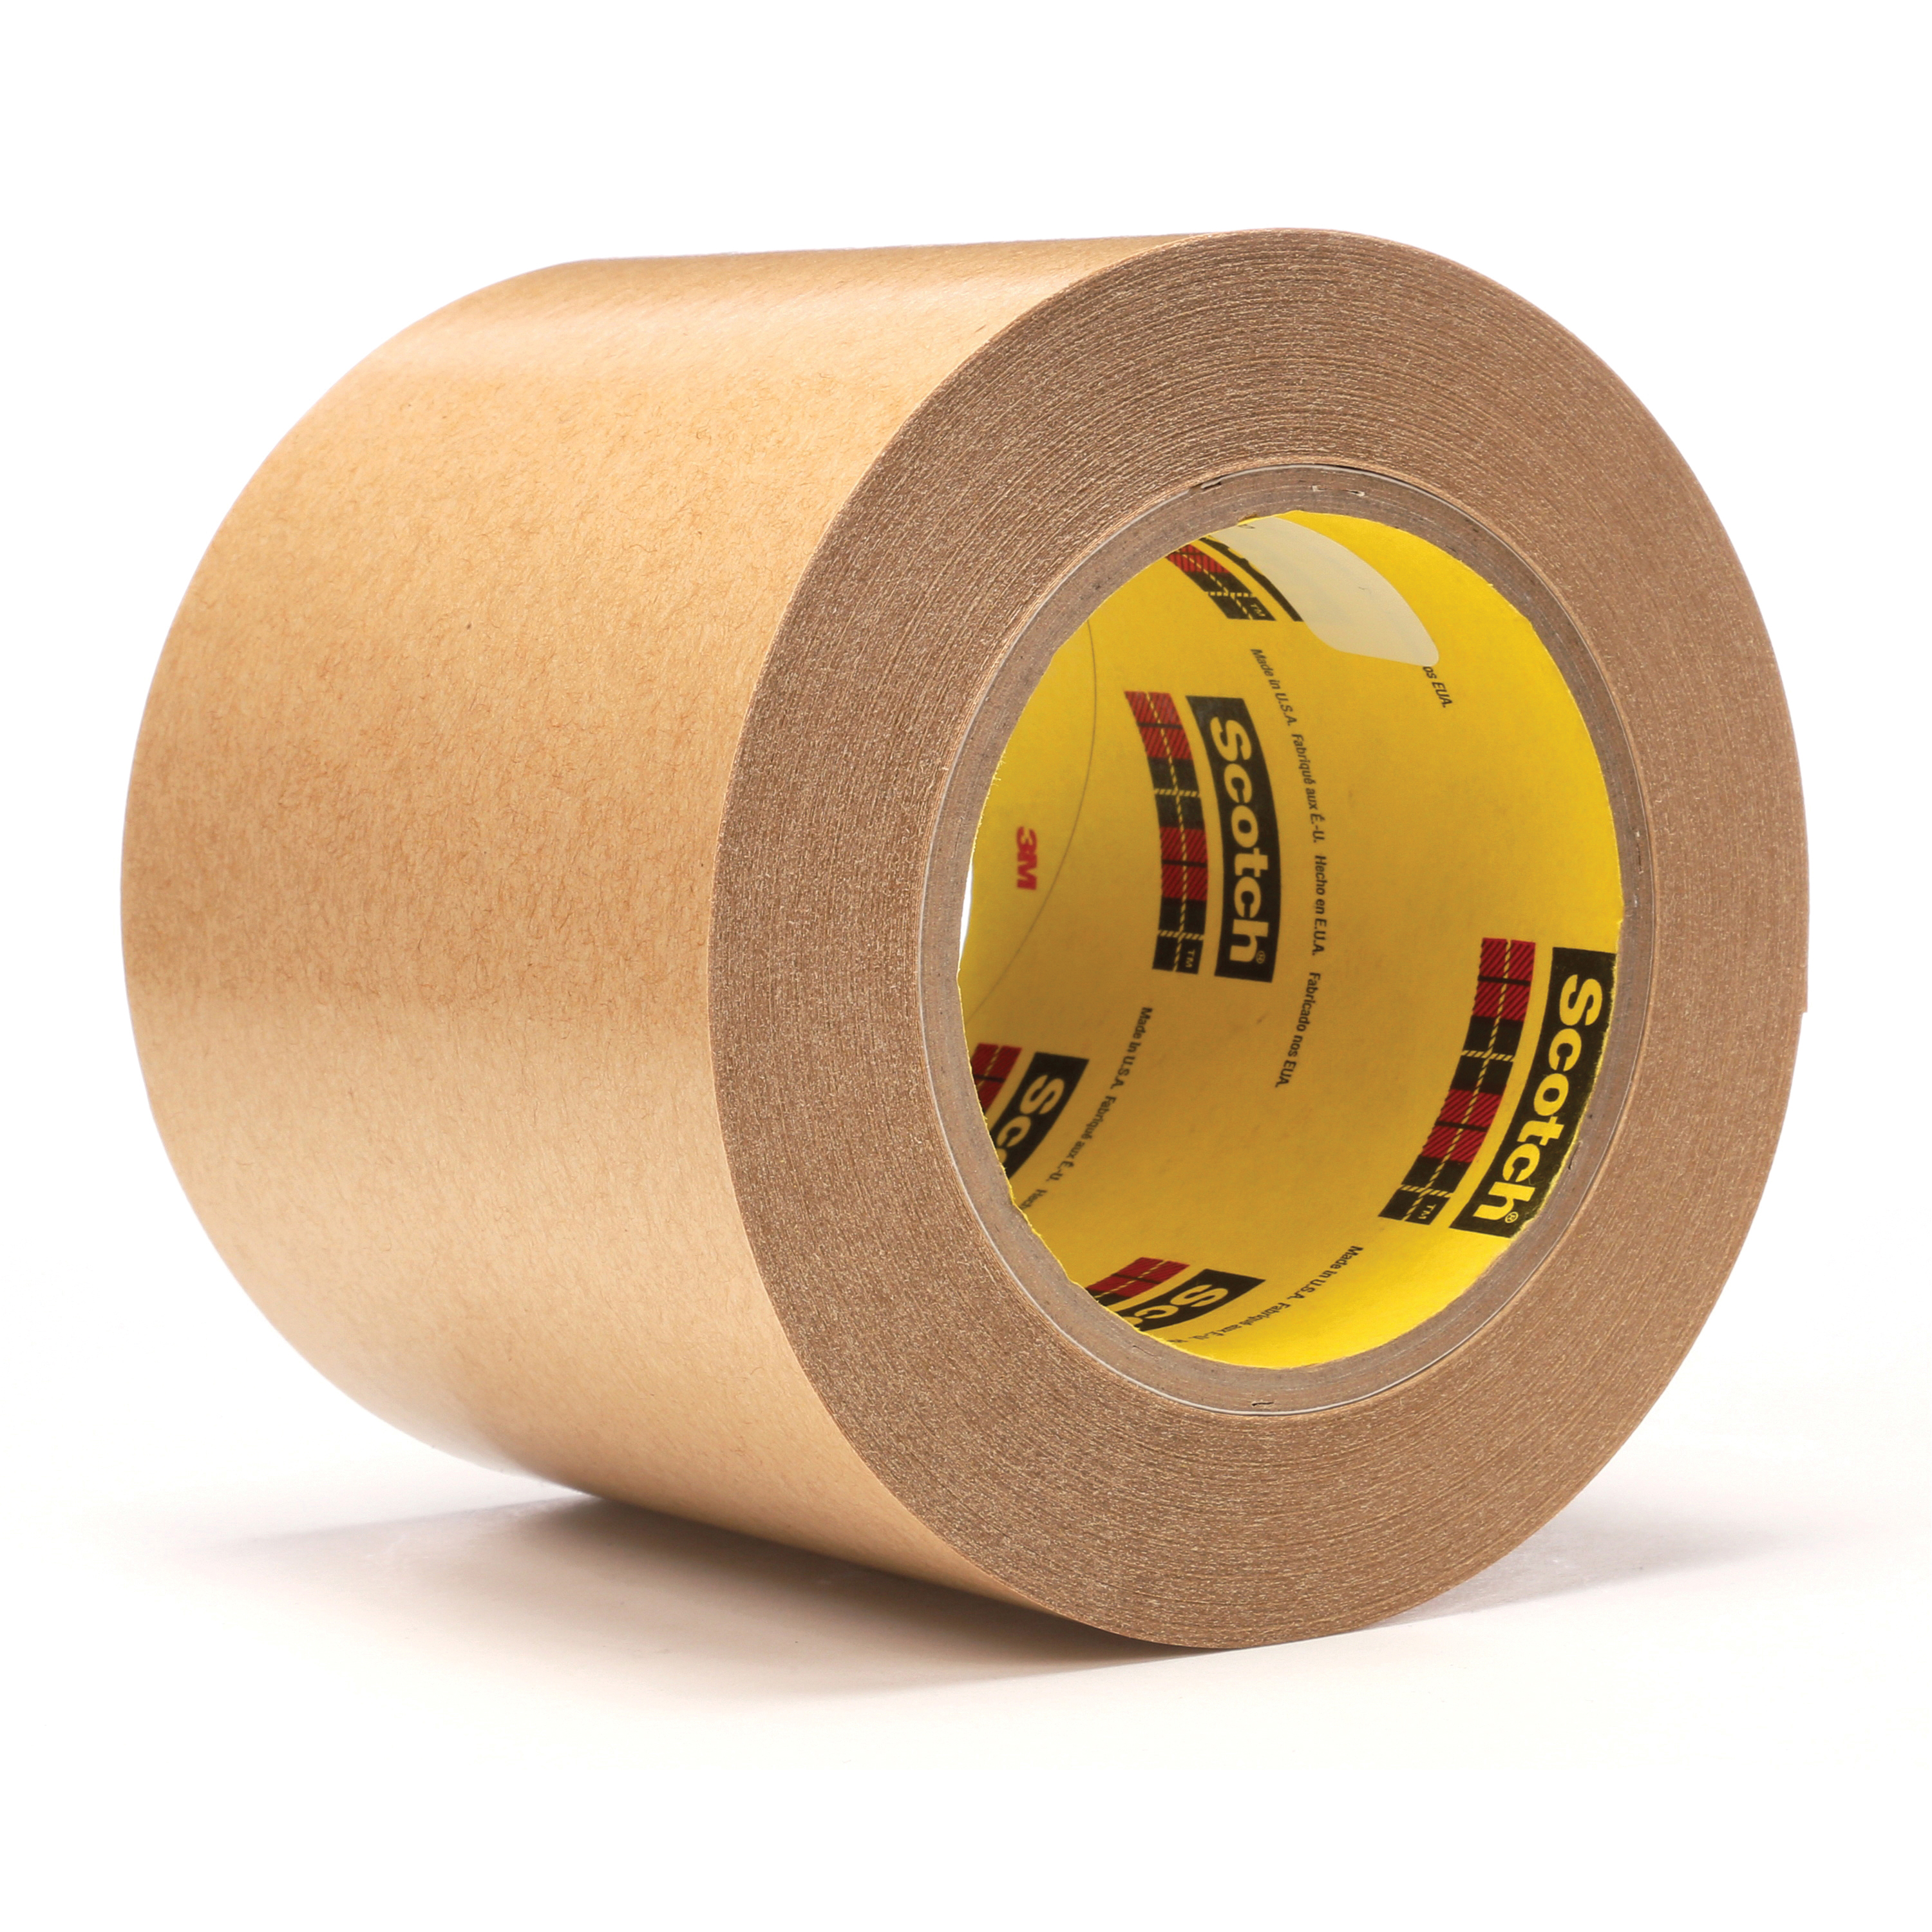 3M™ 021200-03341 Fibered General Purpose Adhesive Transfer Tape, 60 yd L x 4 in W, 2 mil THK, 2 mil 400 Acrylic Adhesive, Clear